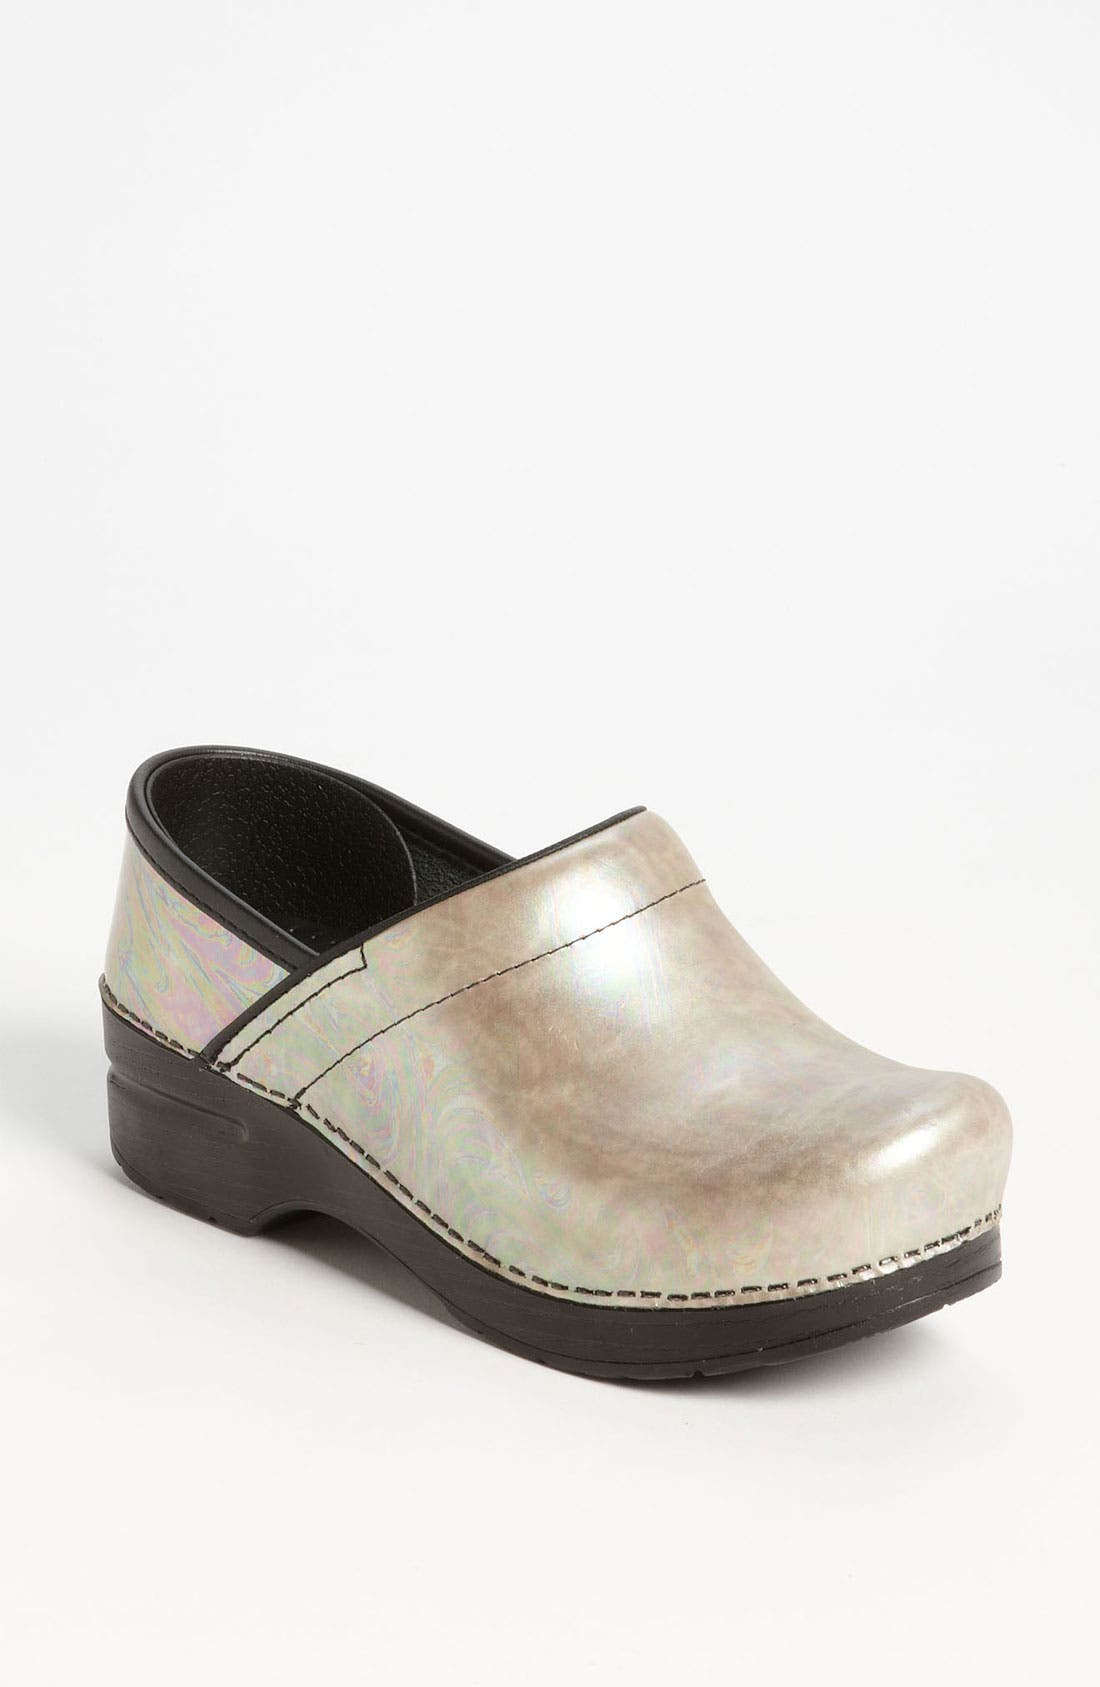 Alternate Image 1 Selected - Dansko 'Professional - Silver Opal' Clog